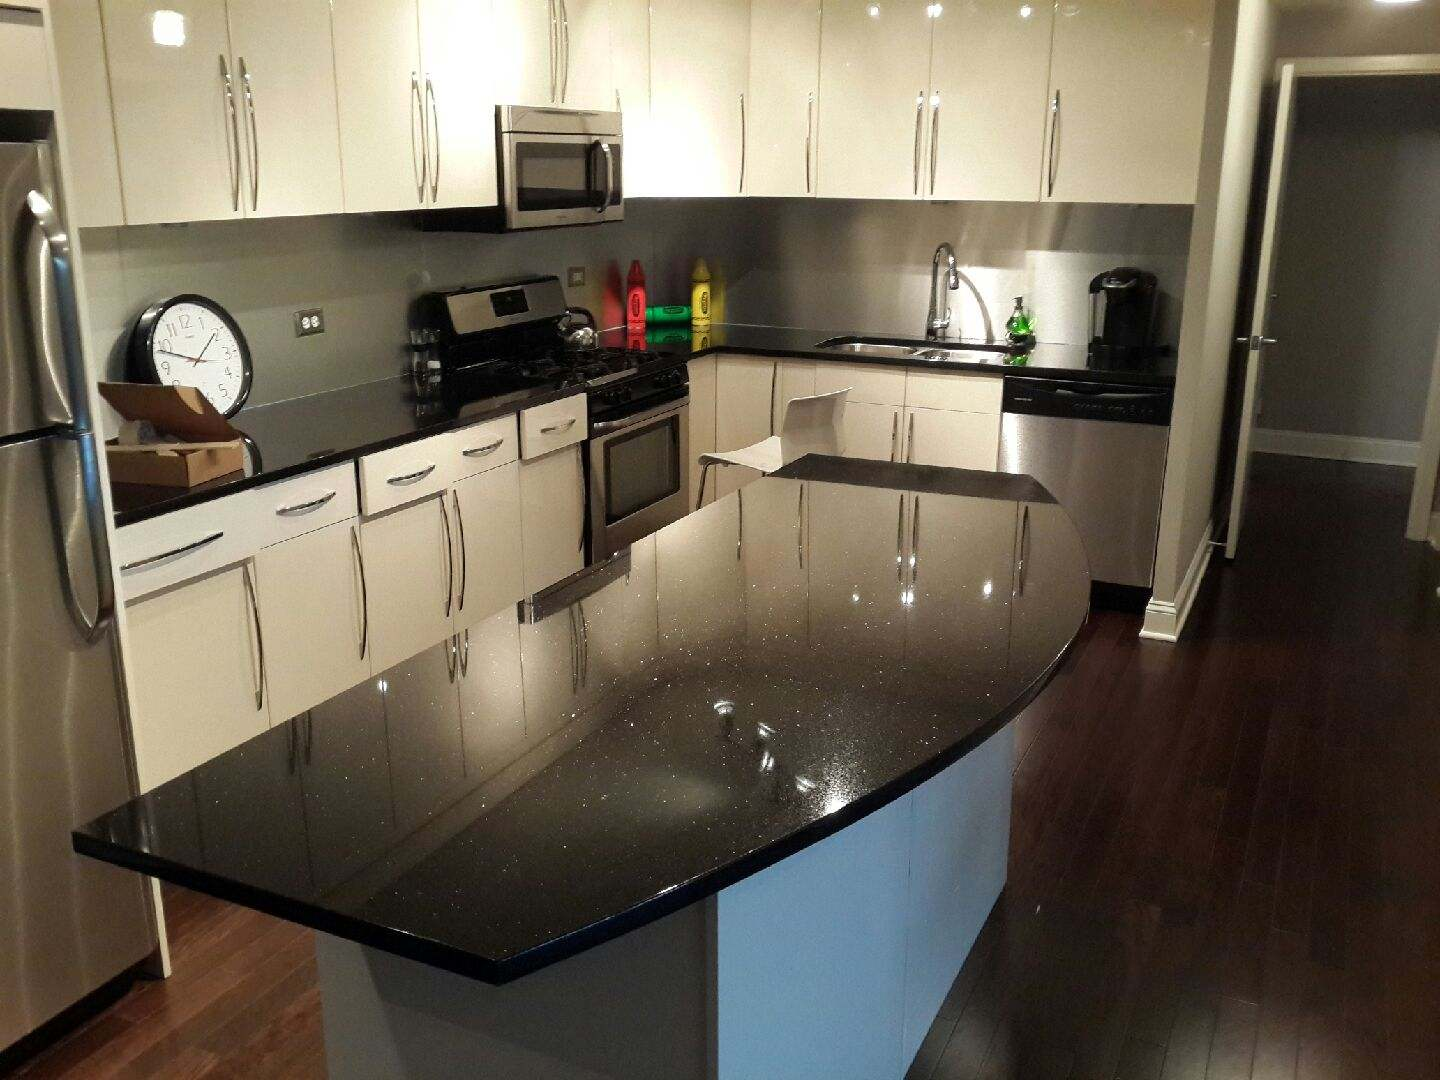 island granite omega white cabinets galaxy cityrock small ideas kitchen cost black galaxya leaksc countertops countertop backsplash faucet hubert dynasty cream